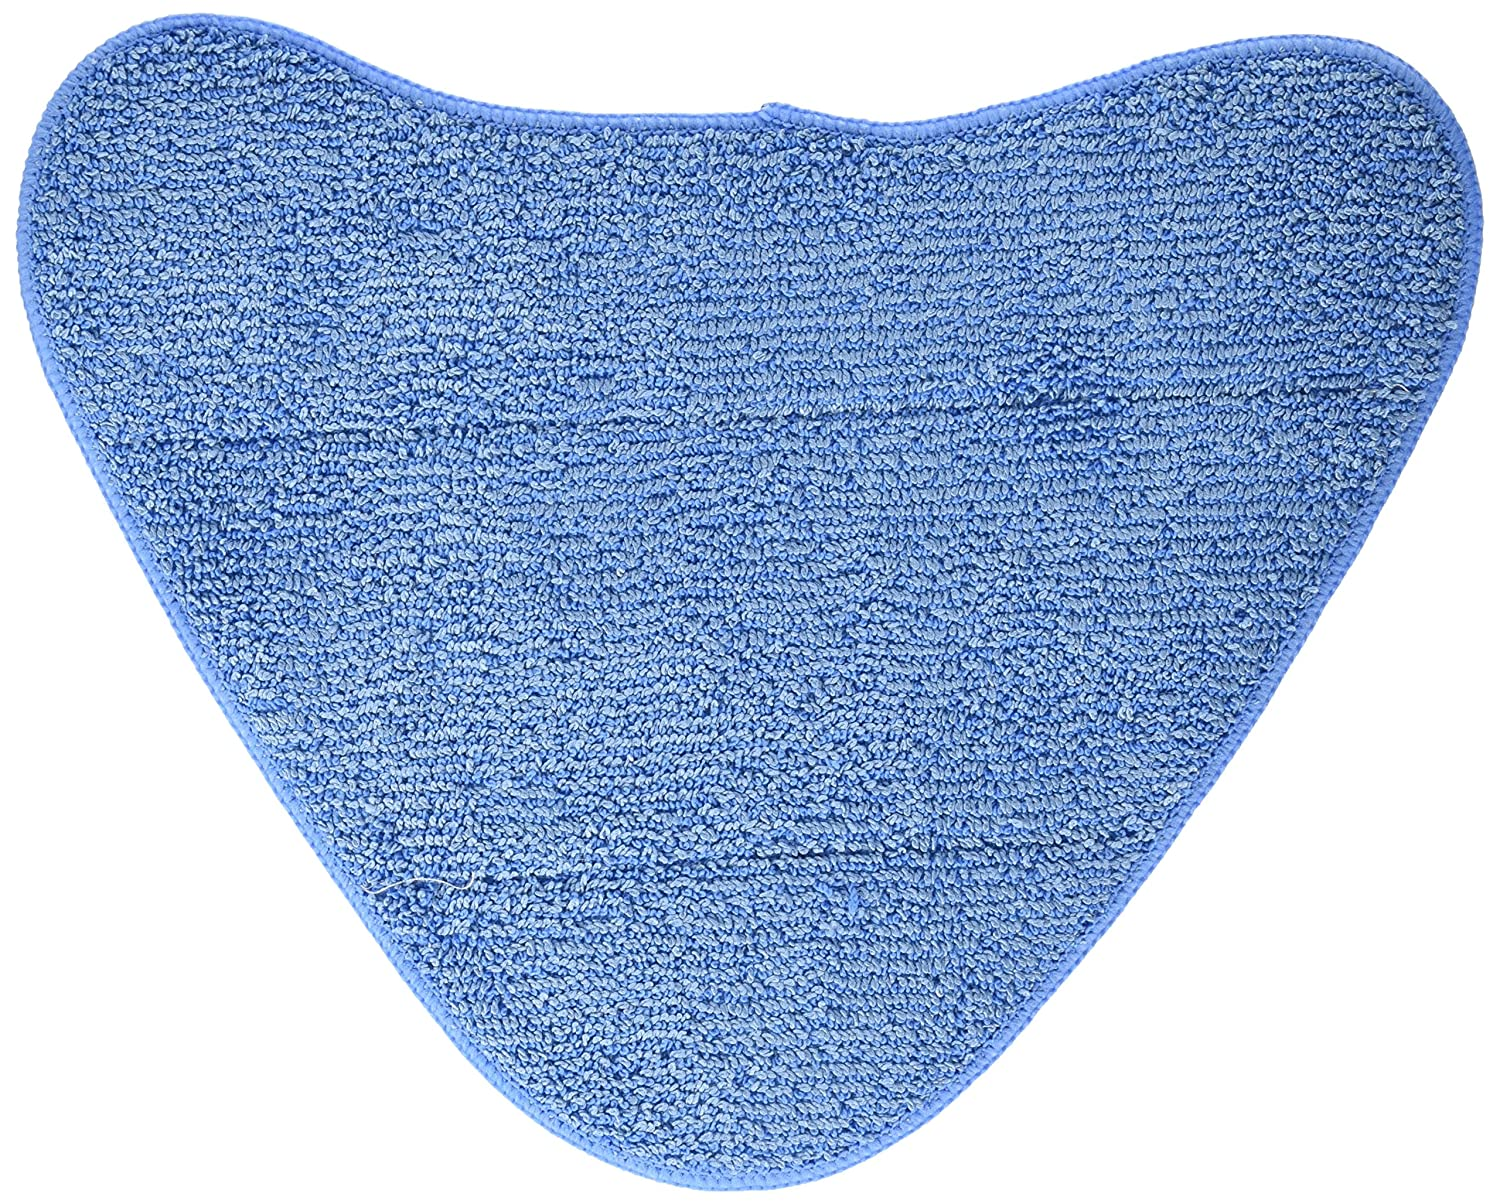 2 Hoover Washable, Reusable Steam Mop Pads Designed To Fit WH20200 Steam Mop, WH20300 Canister Steam Cleaner; Compare To part # WH01000; Designed & Engineered By Crucial Vacuum